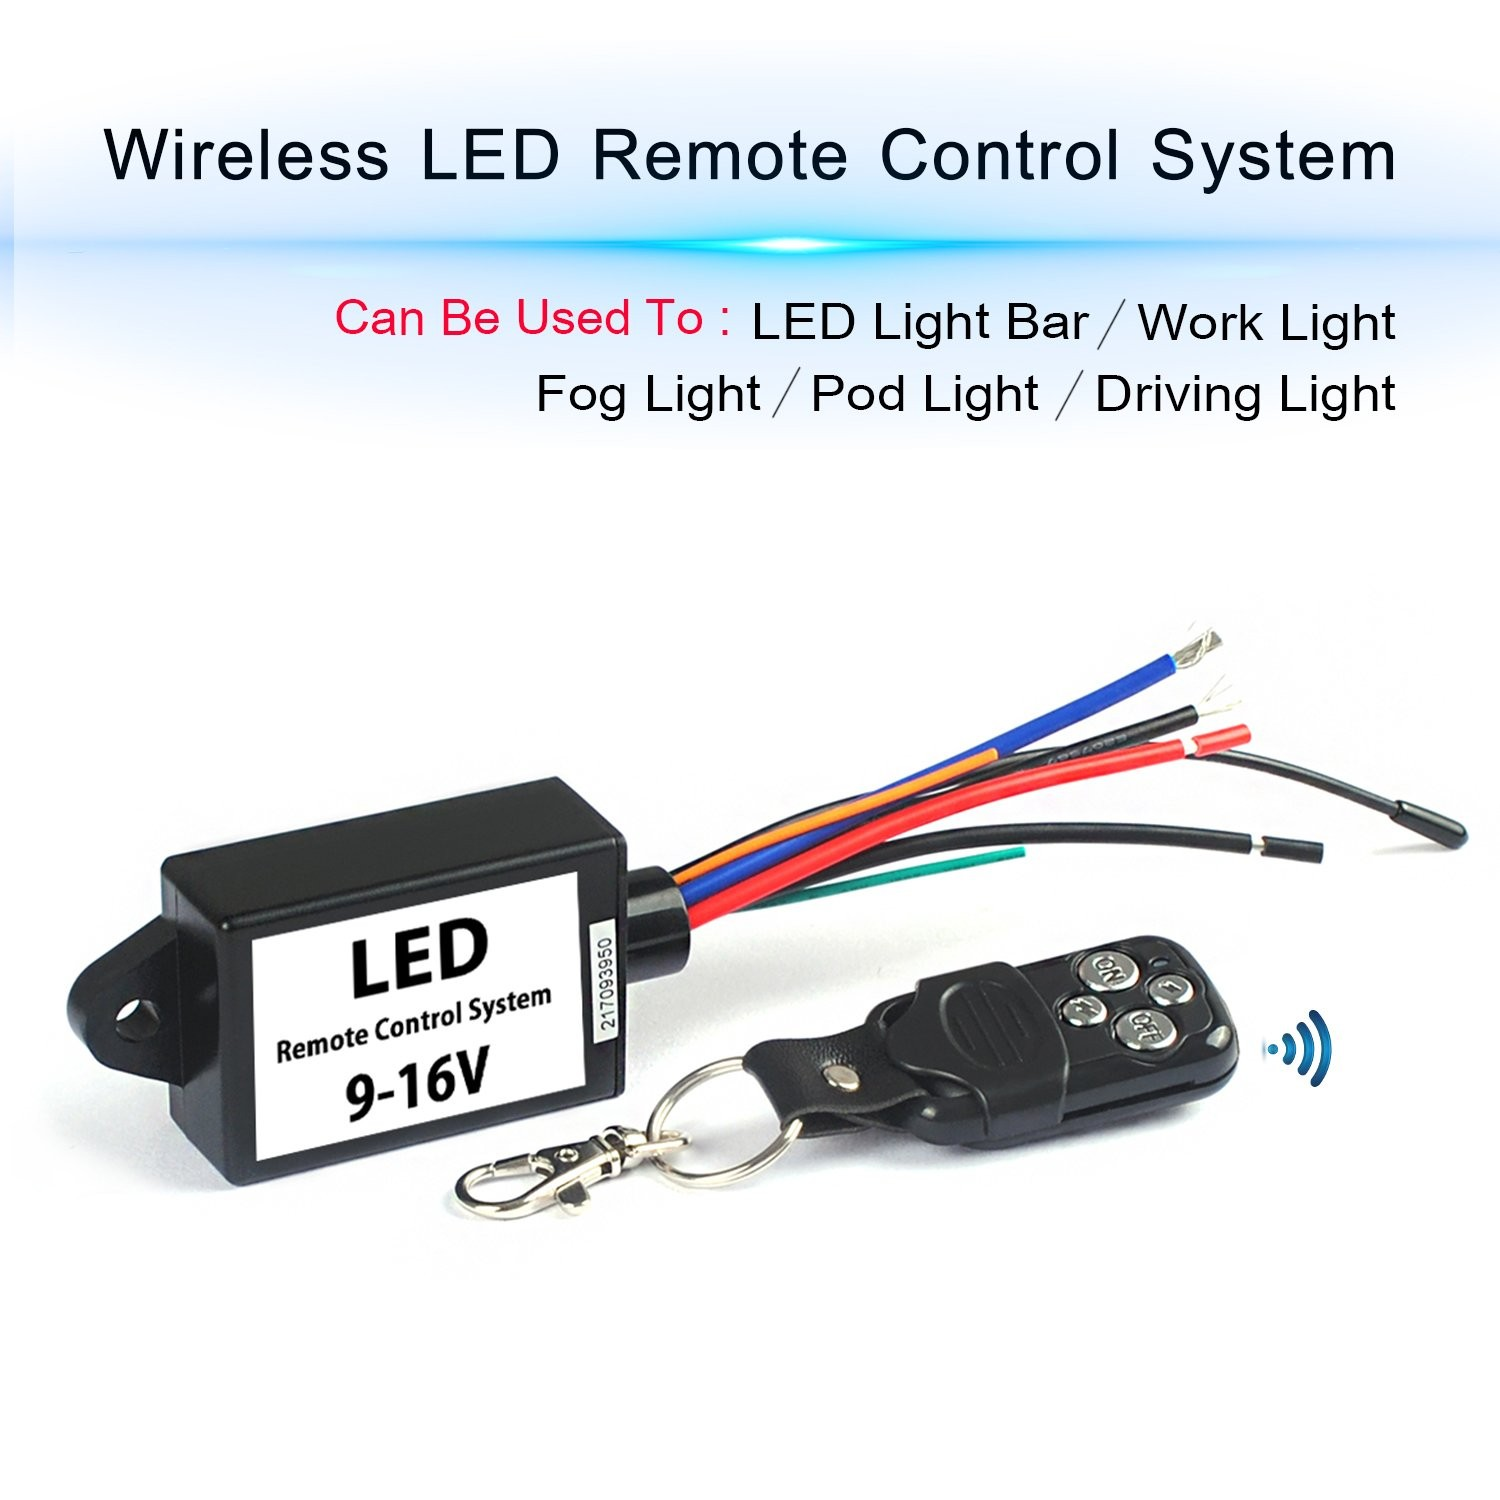 LED Light Bar Remote Wiring Harness Wireless Remote Wiring Harness for LED Light Bar Driving Light Fog Light Pods Light Work Light Supported Current is 30A